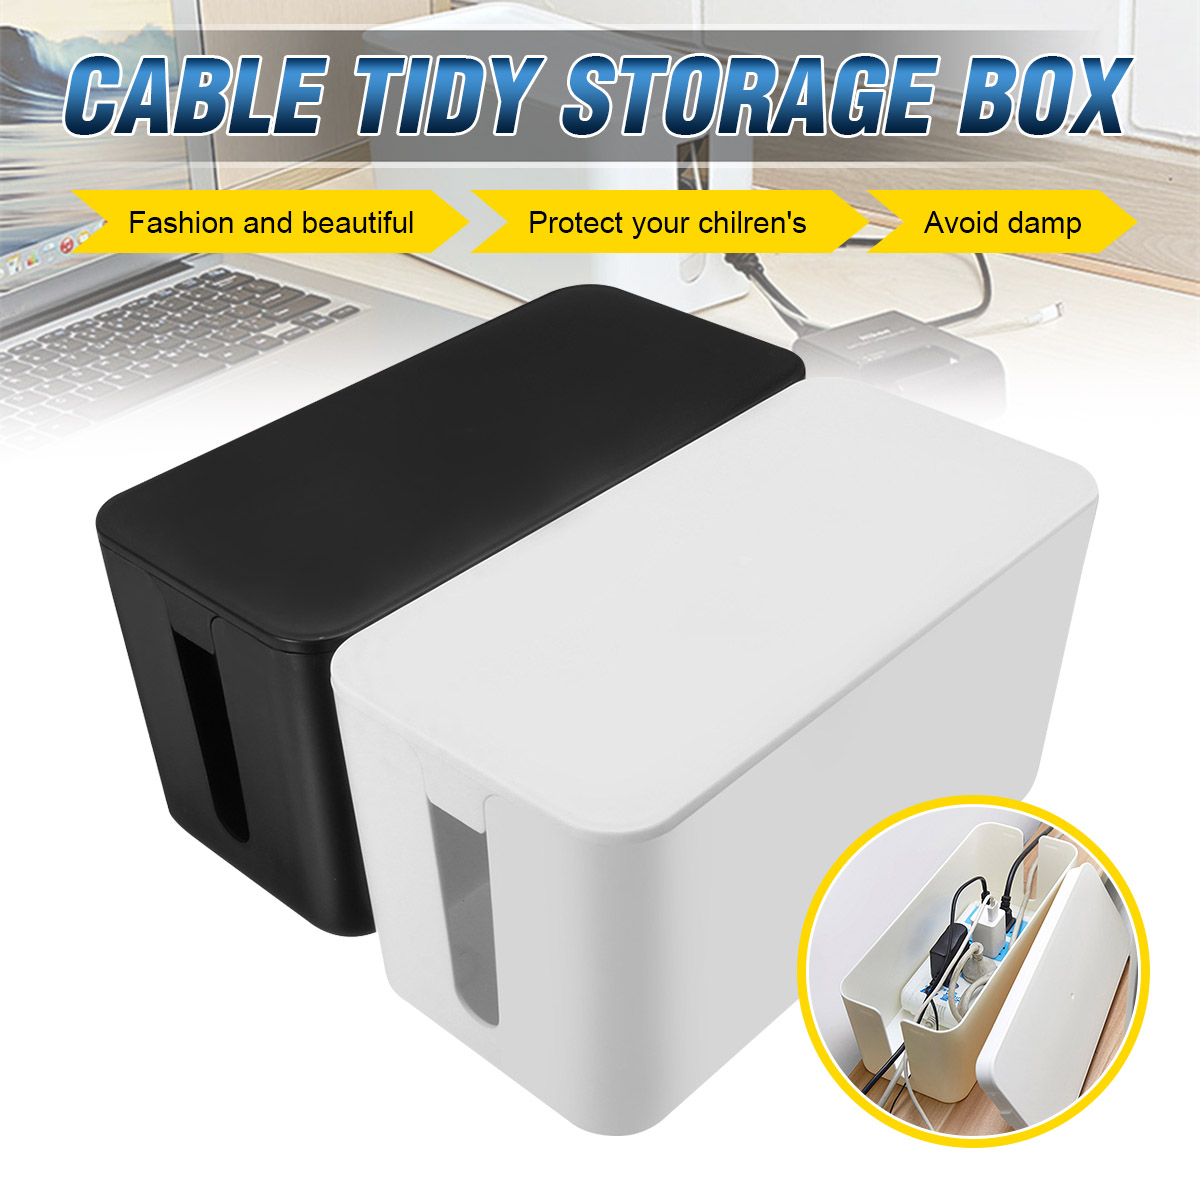 Tidy-Storage-Box Cable Power-Switch Cover-Design Easy-To-Heat White Dust-Safety PP Emission